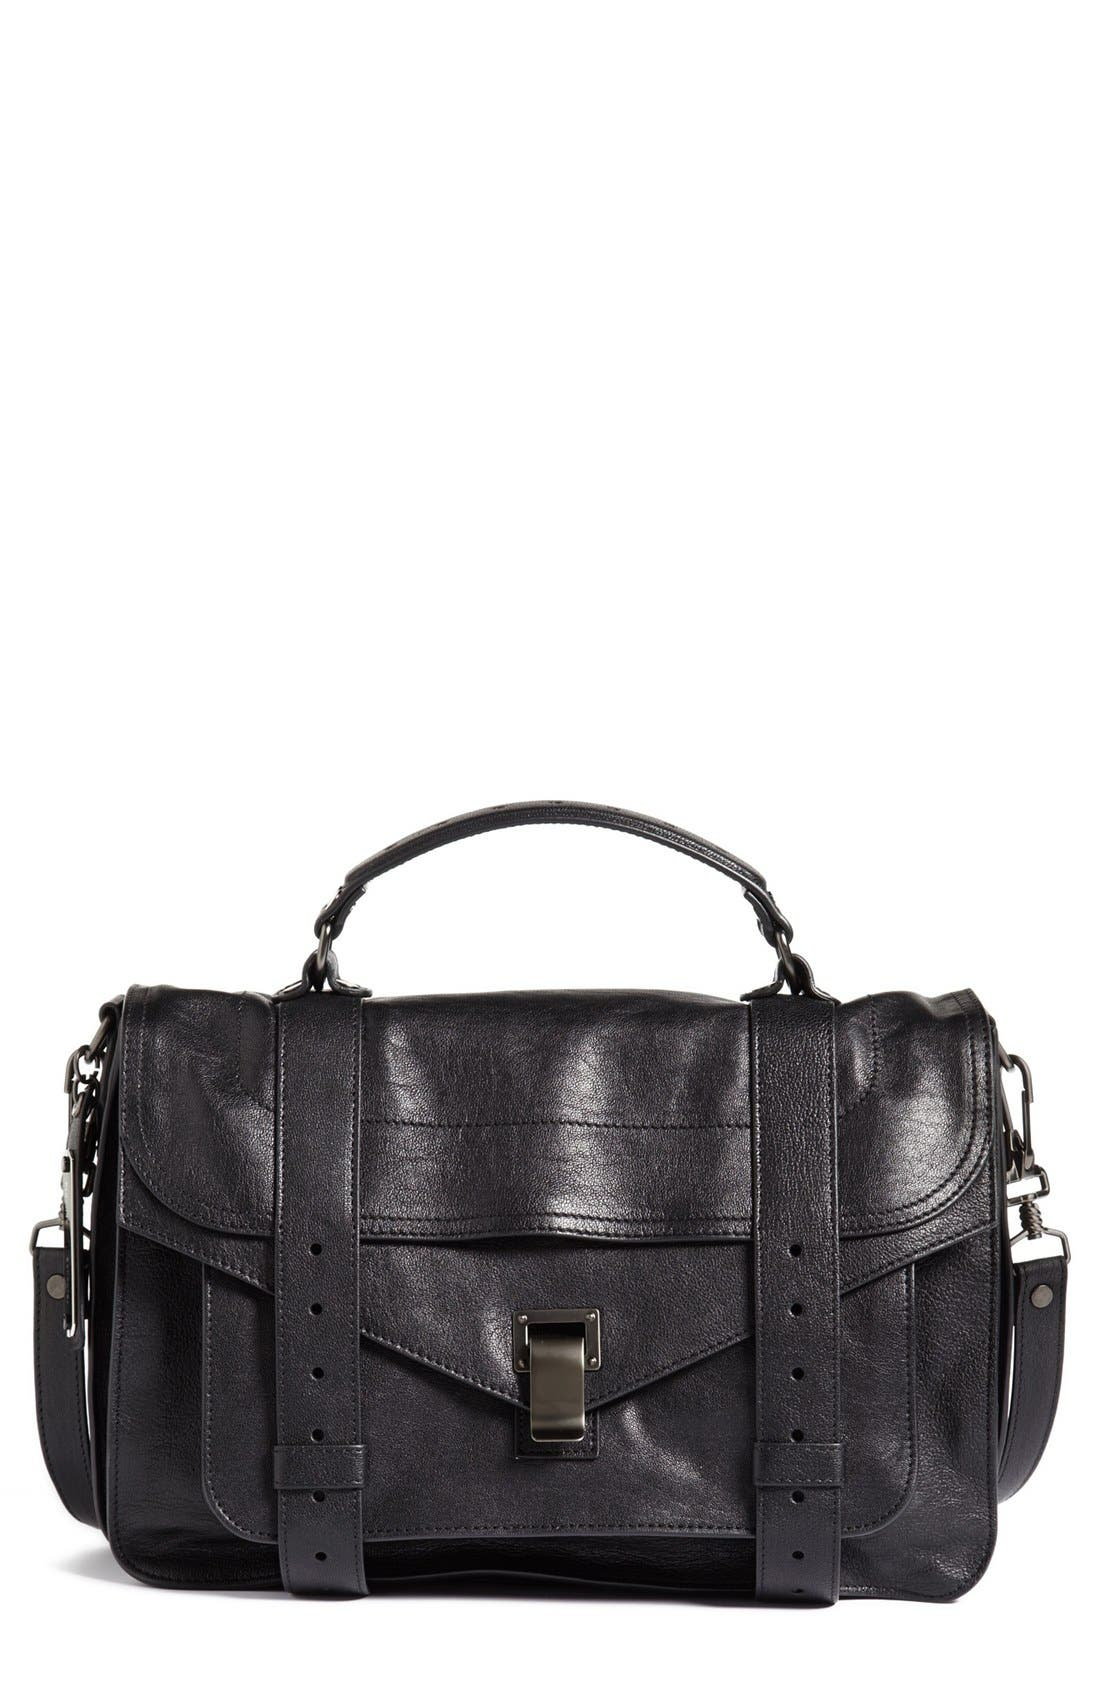 Alternate Image 1 Selected - Proenza Schouler 'Medium PS1' Satchel